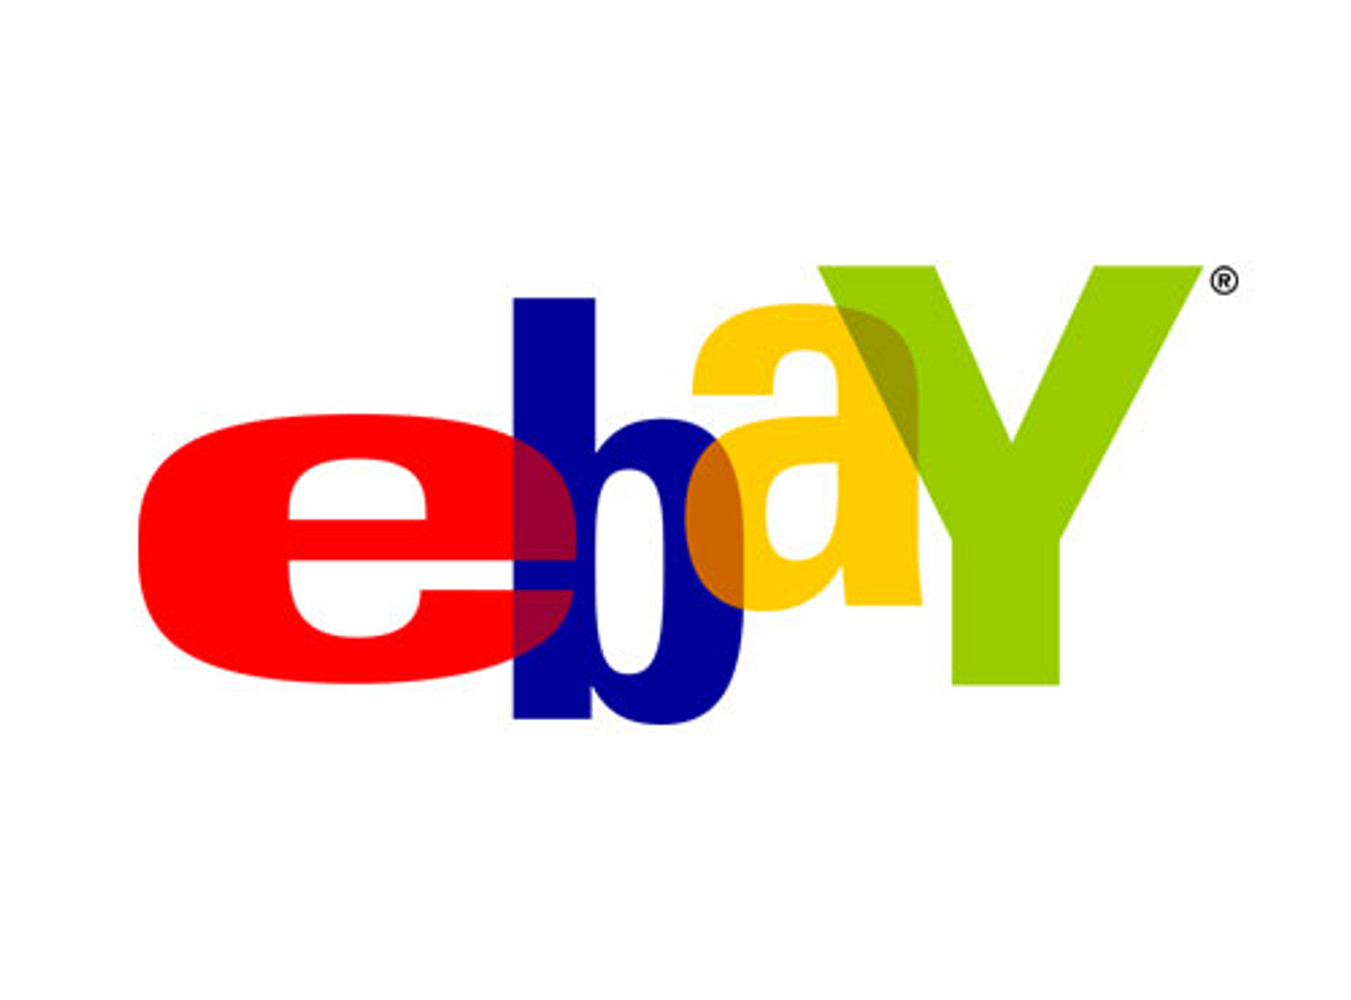 Banneker Watches & Clocks partners with ebay